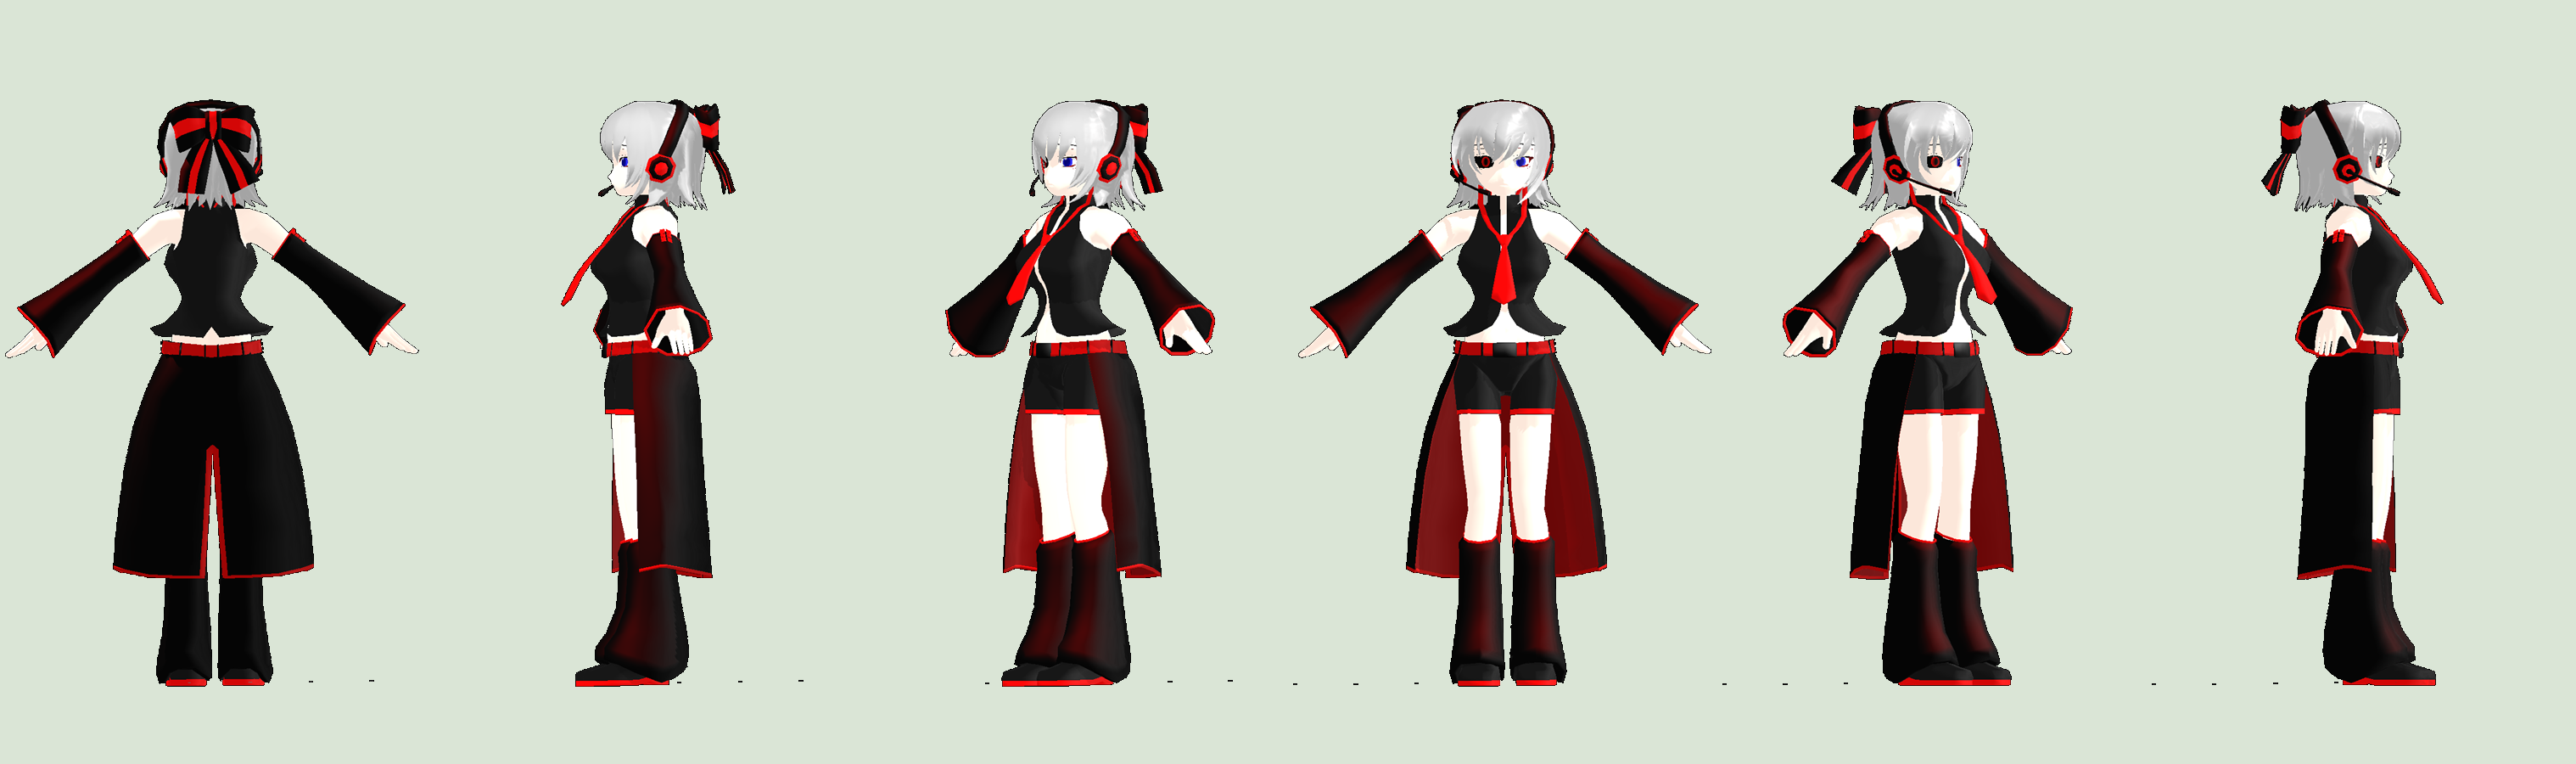 MMD Newcomer - Hako Yuwane (AN003 Contest) by mother-noroi